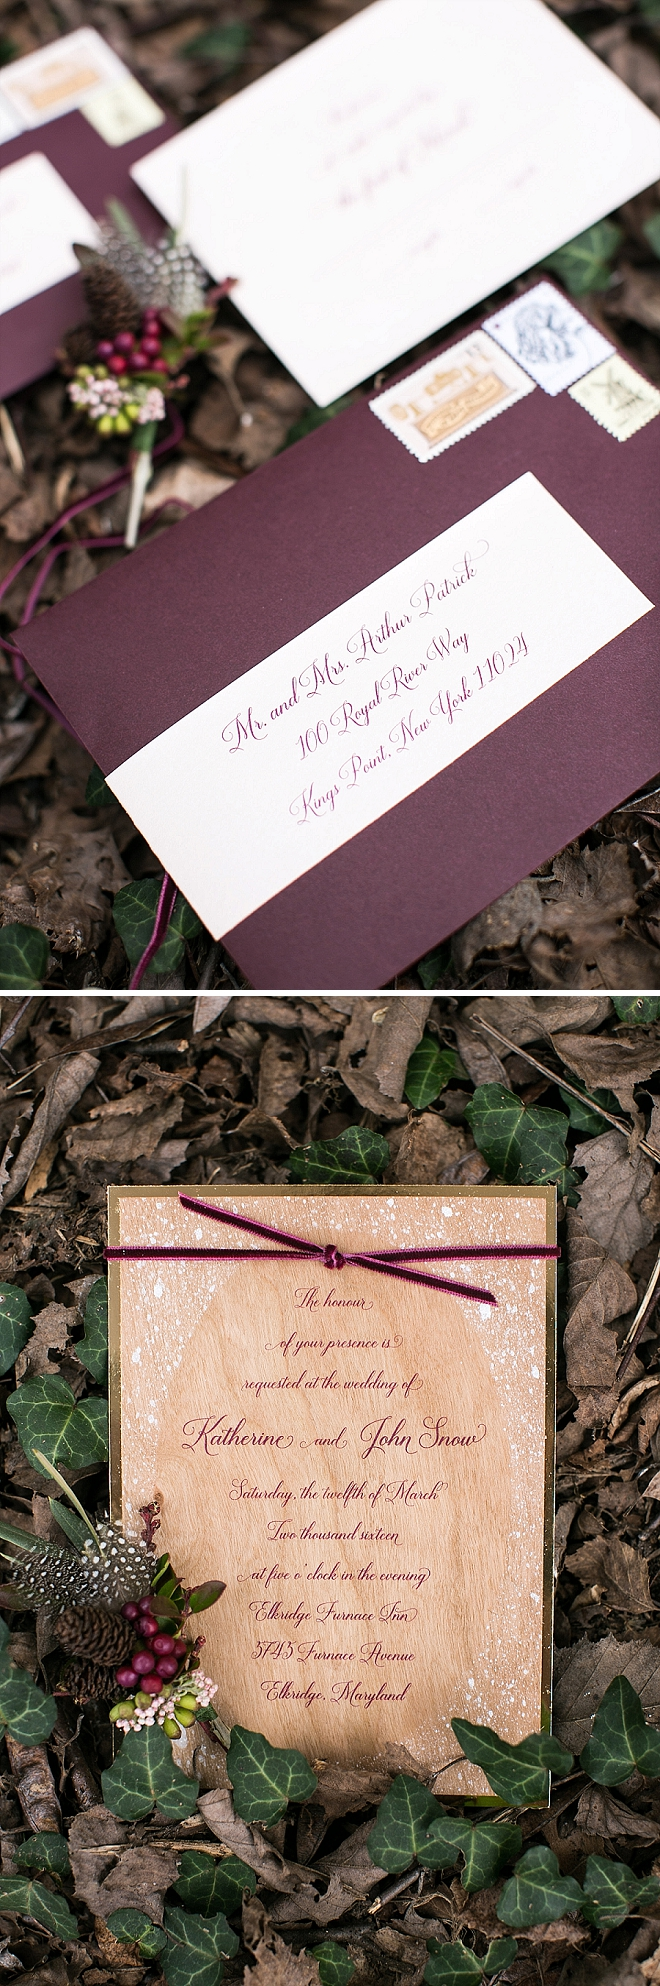 We love these stunning wooden invitations at this styled Snow White wedding!